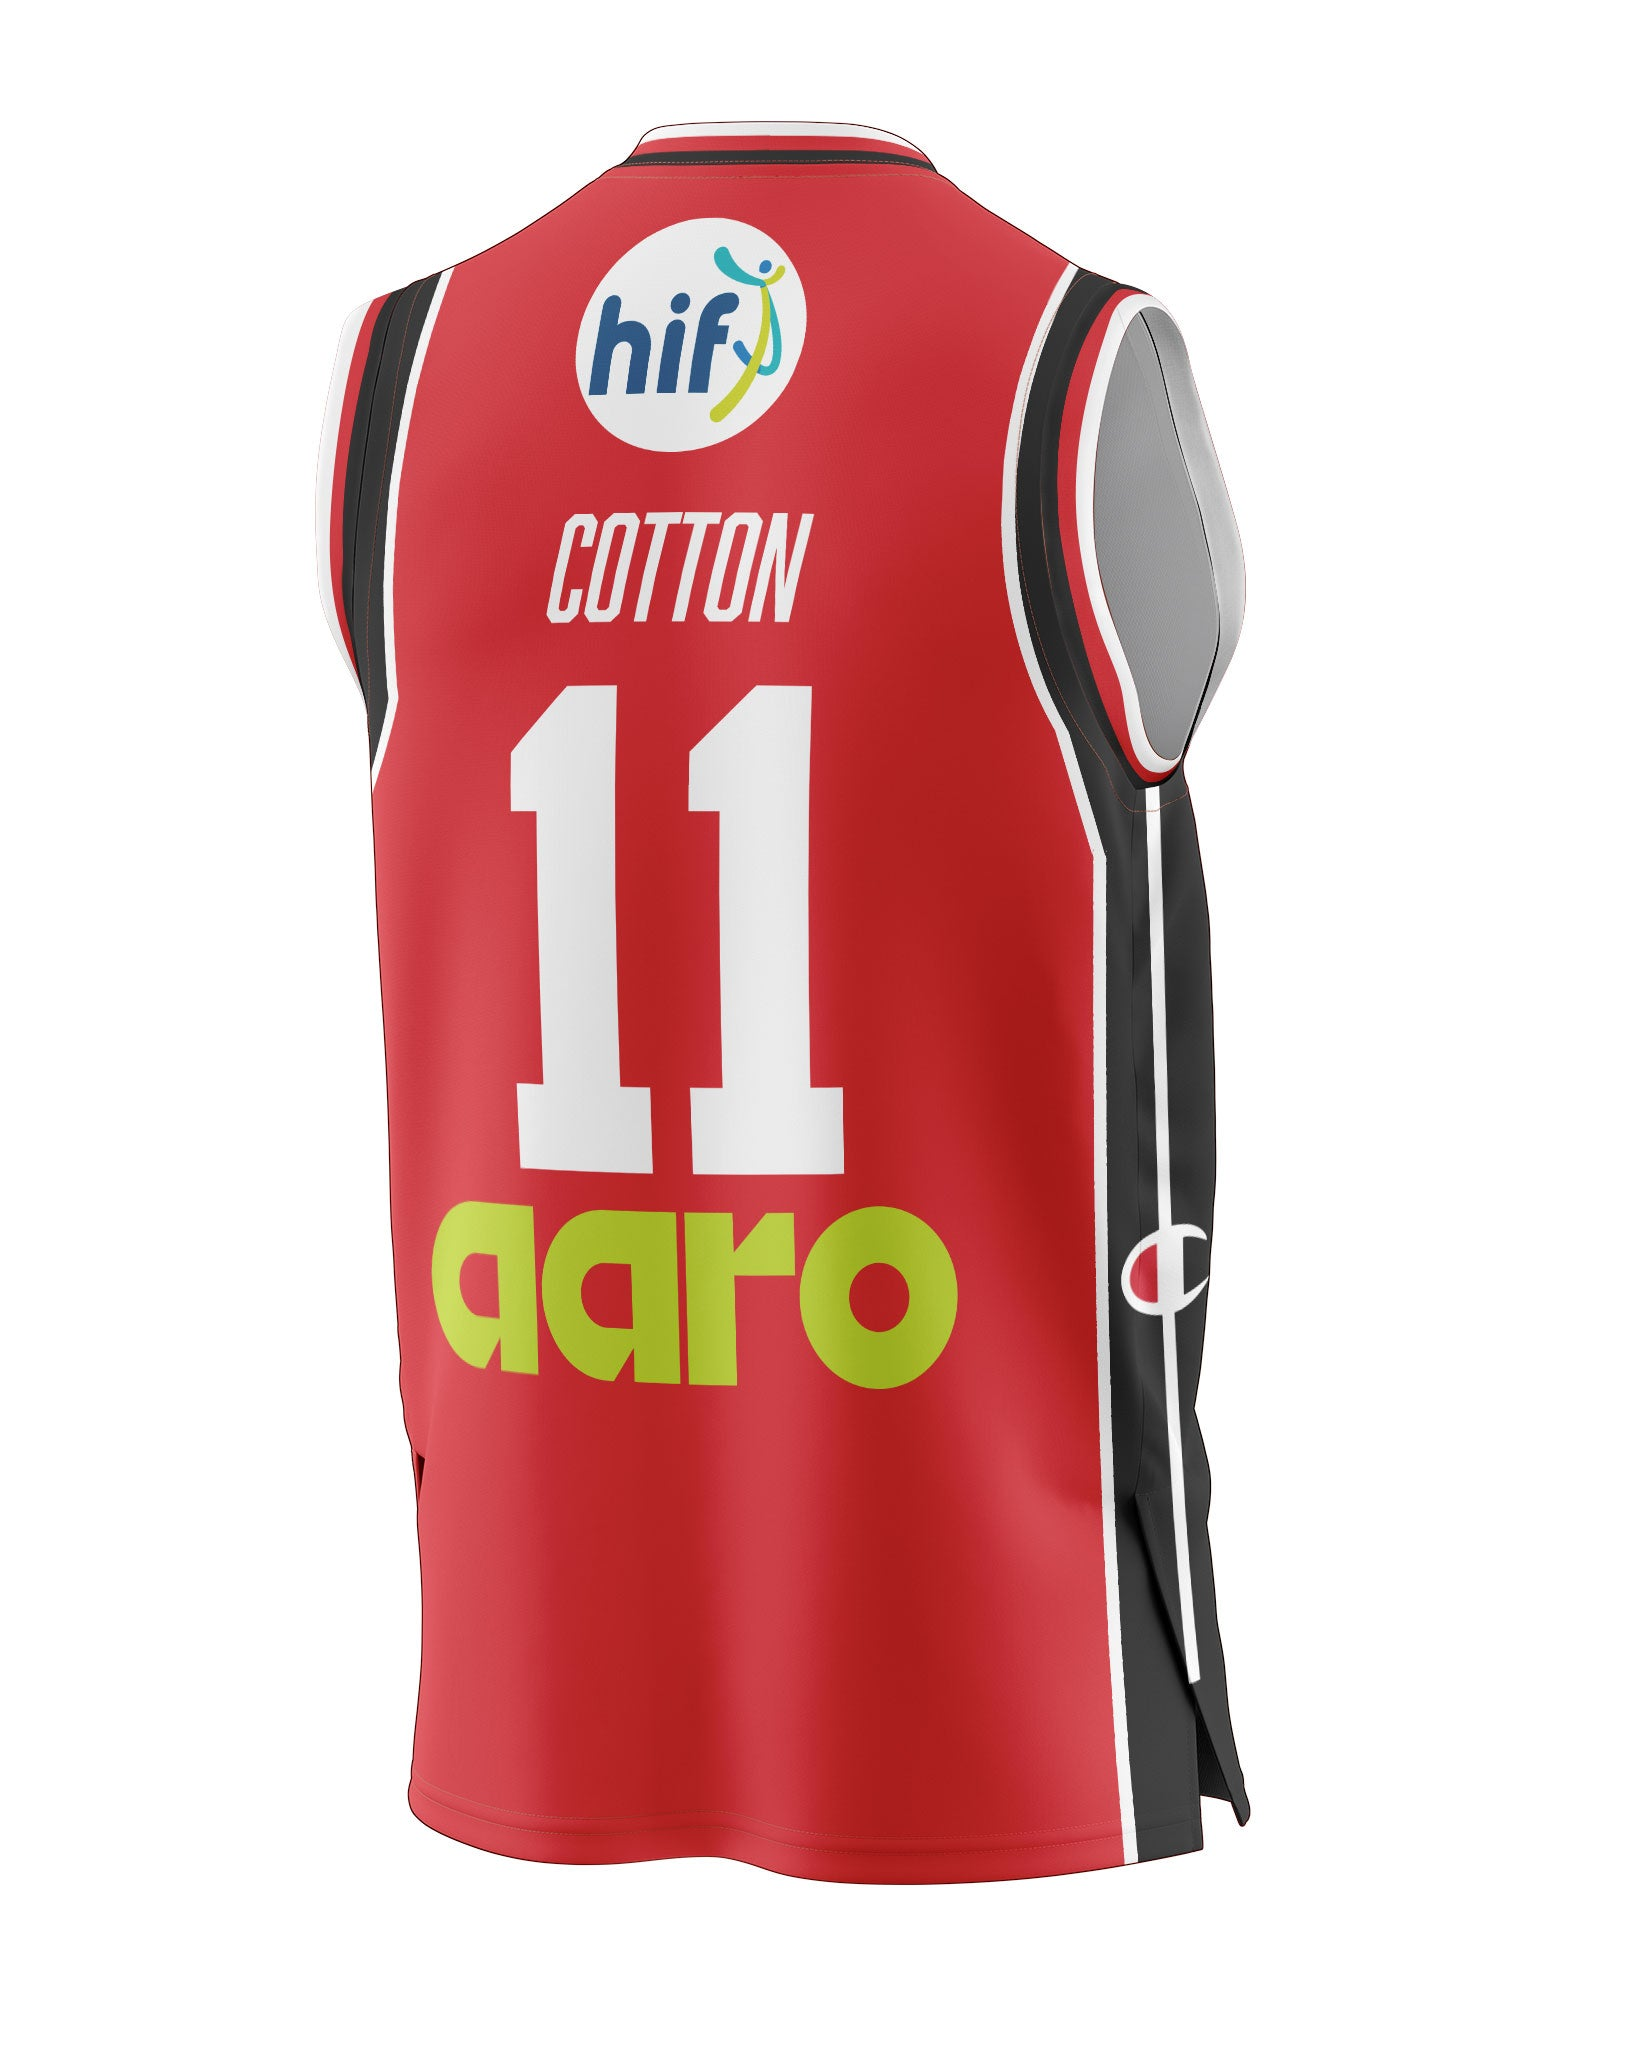 Perth Wildcats 20/21 Authentic Heritage Jersey - Bryce Cotton